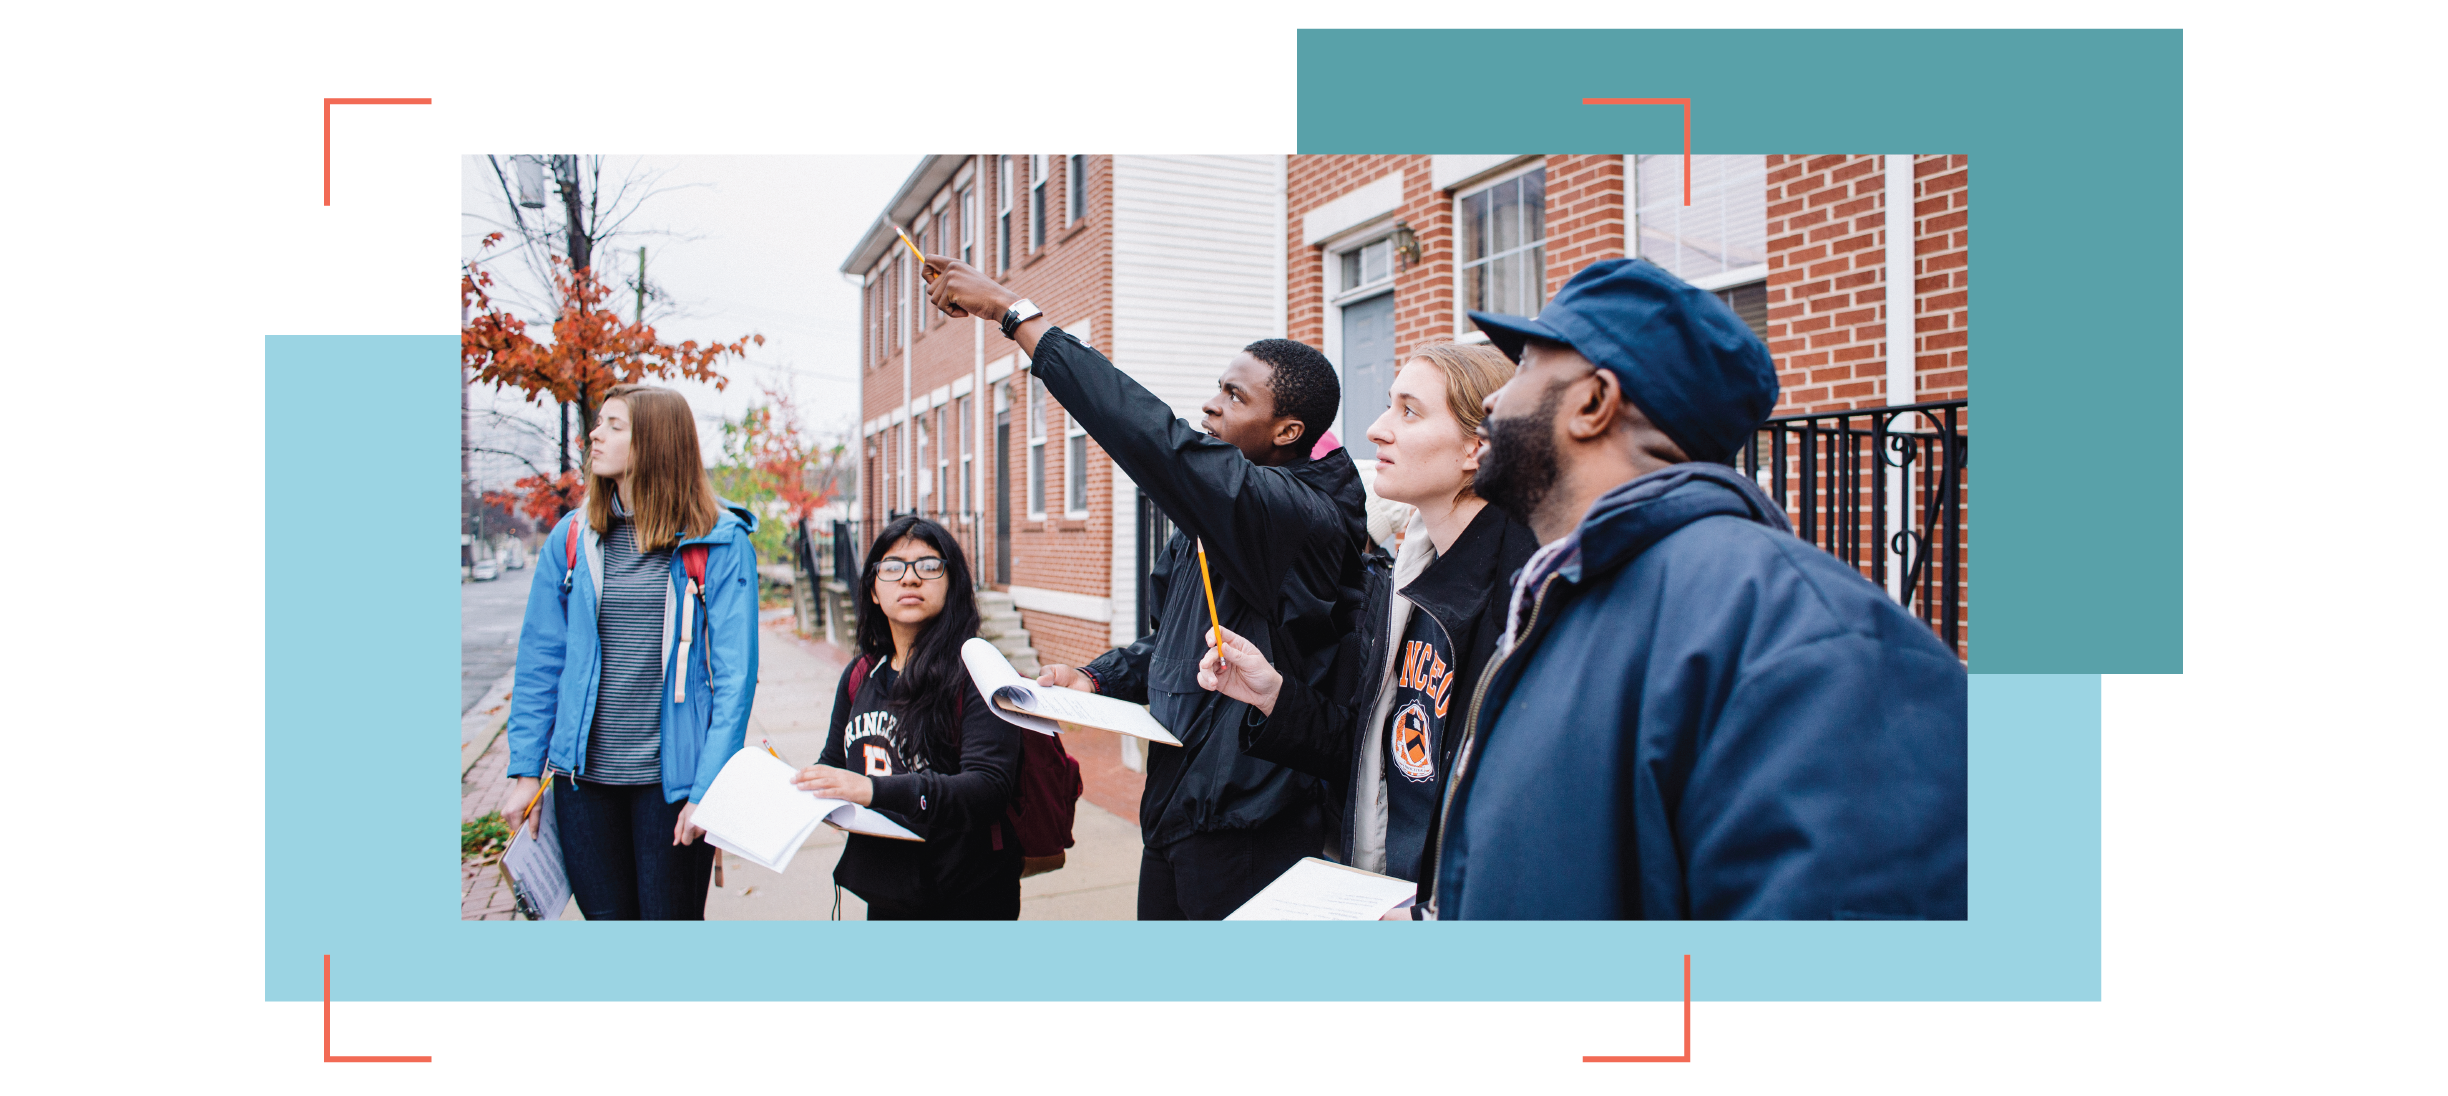 Princeton students with notepads surveying housing in a suburban setting